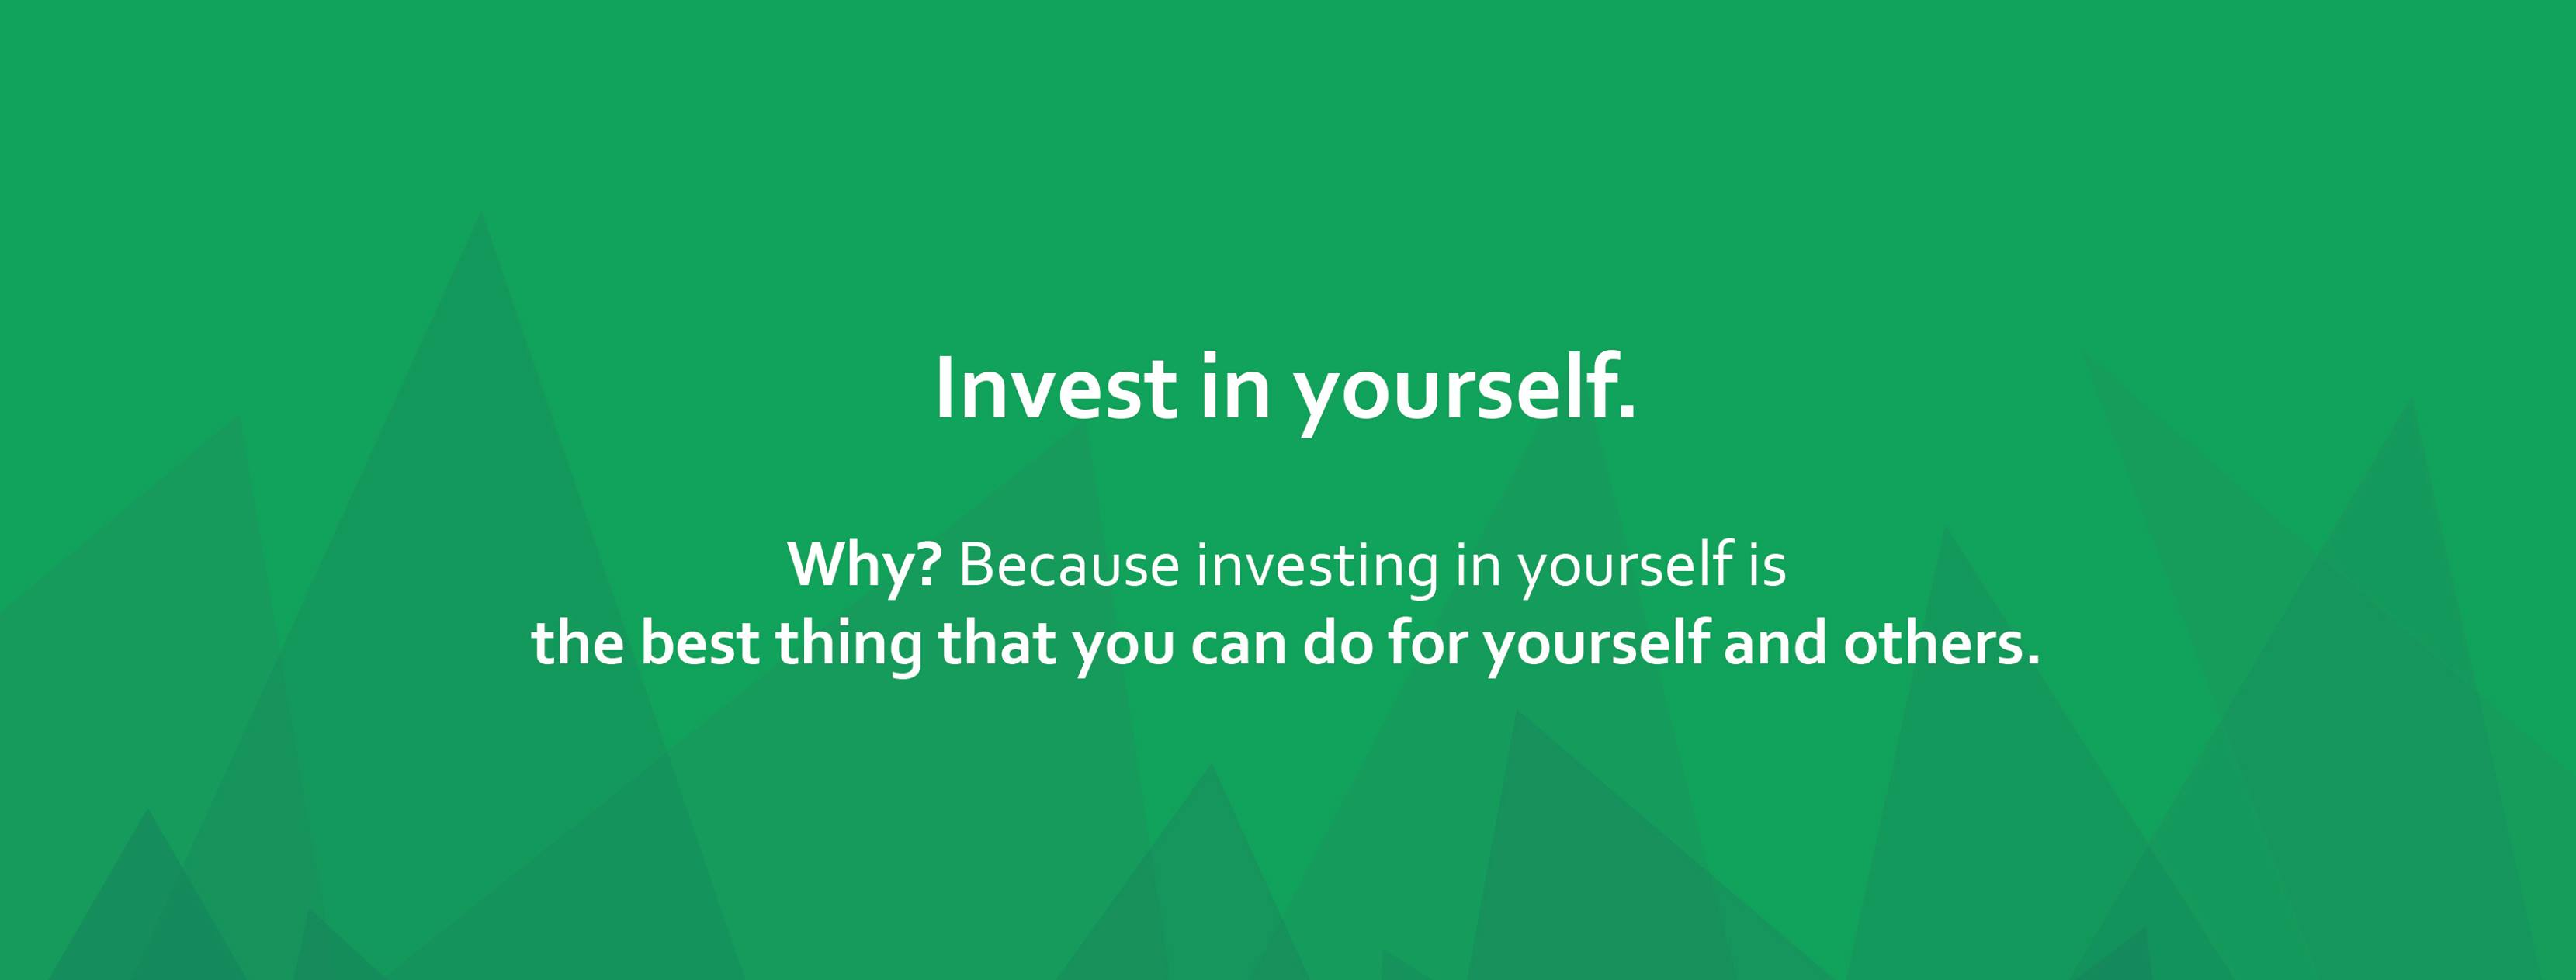 cytat: Invest in yourself